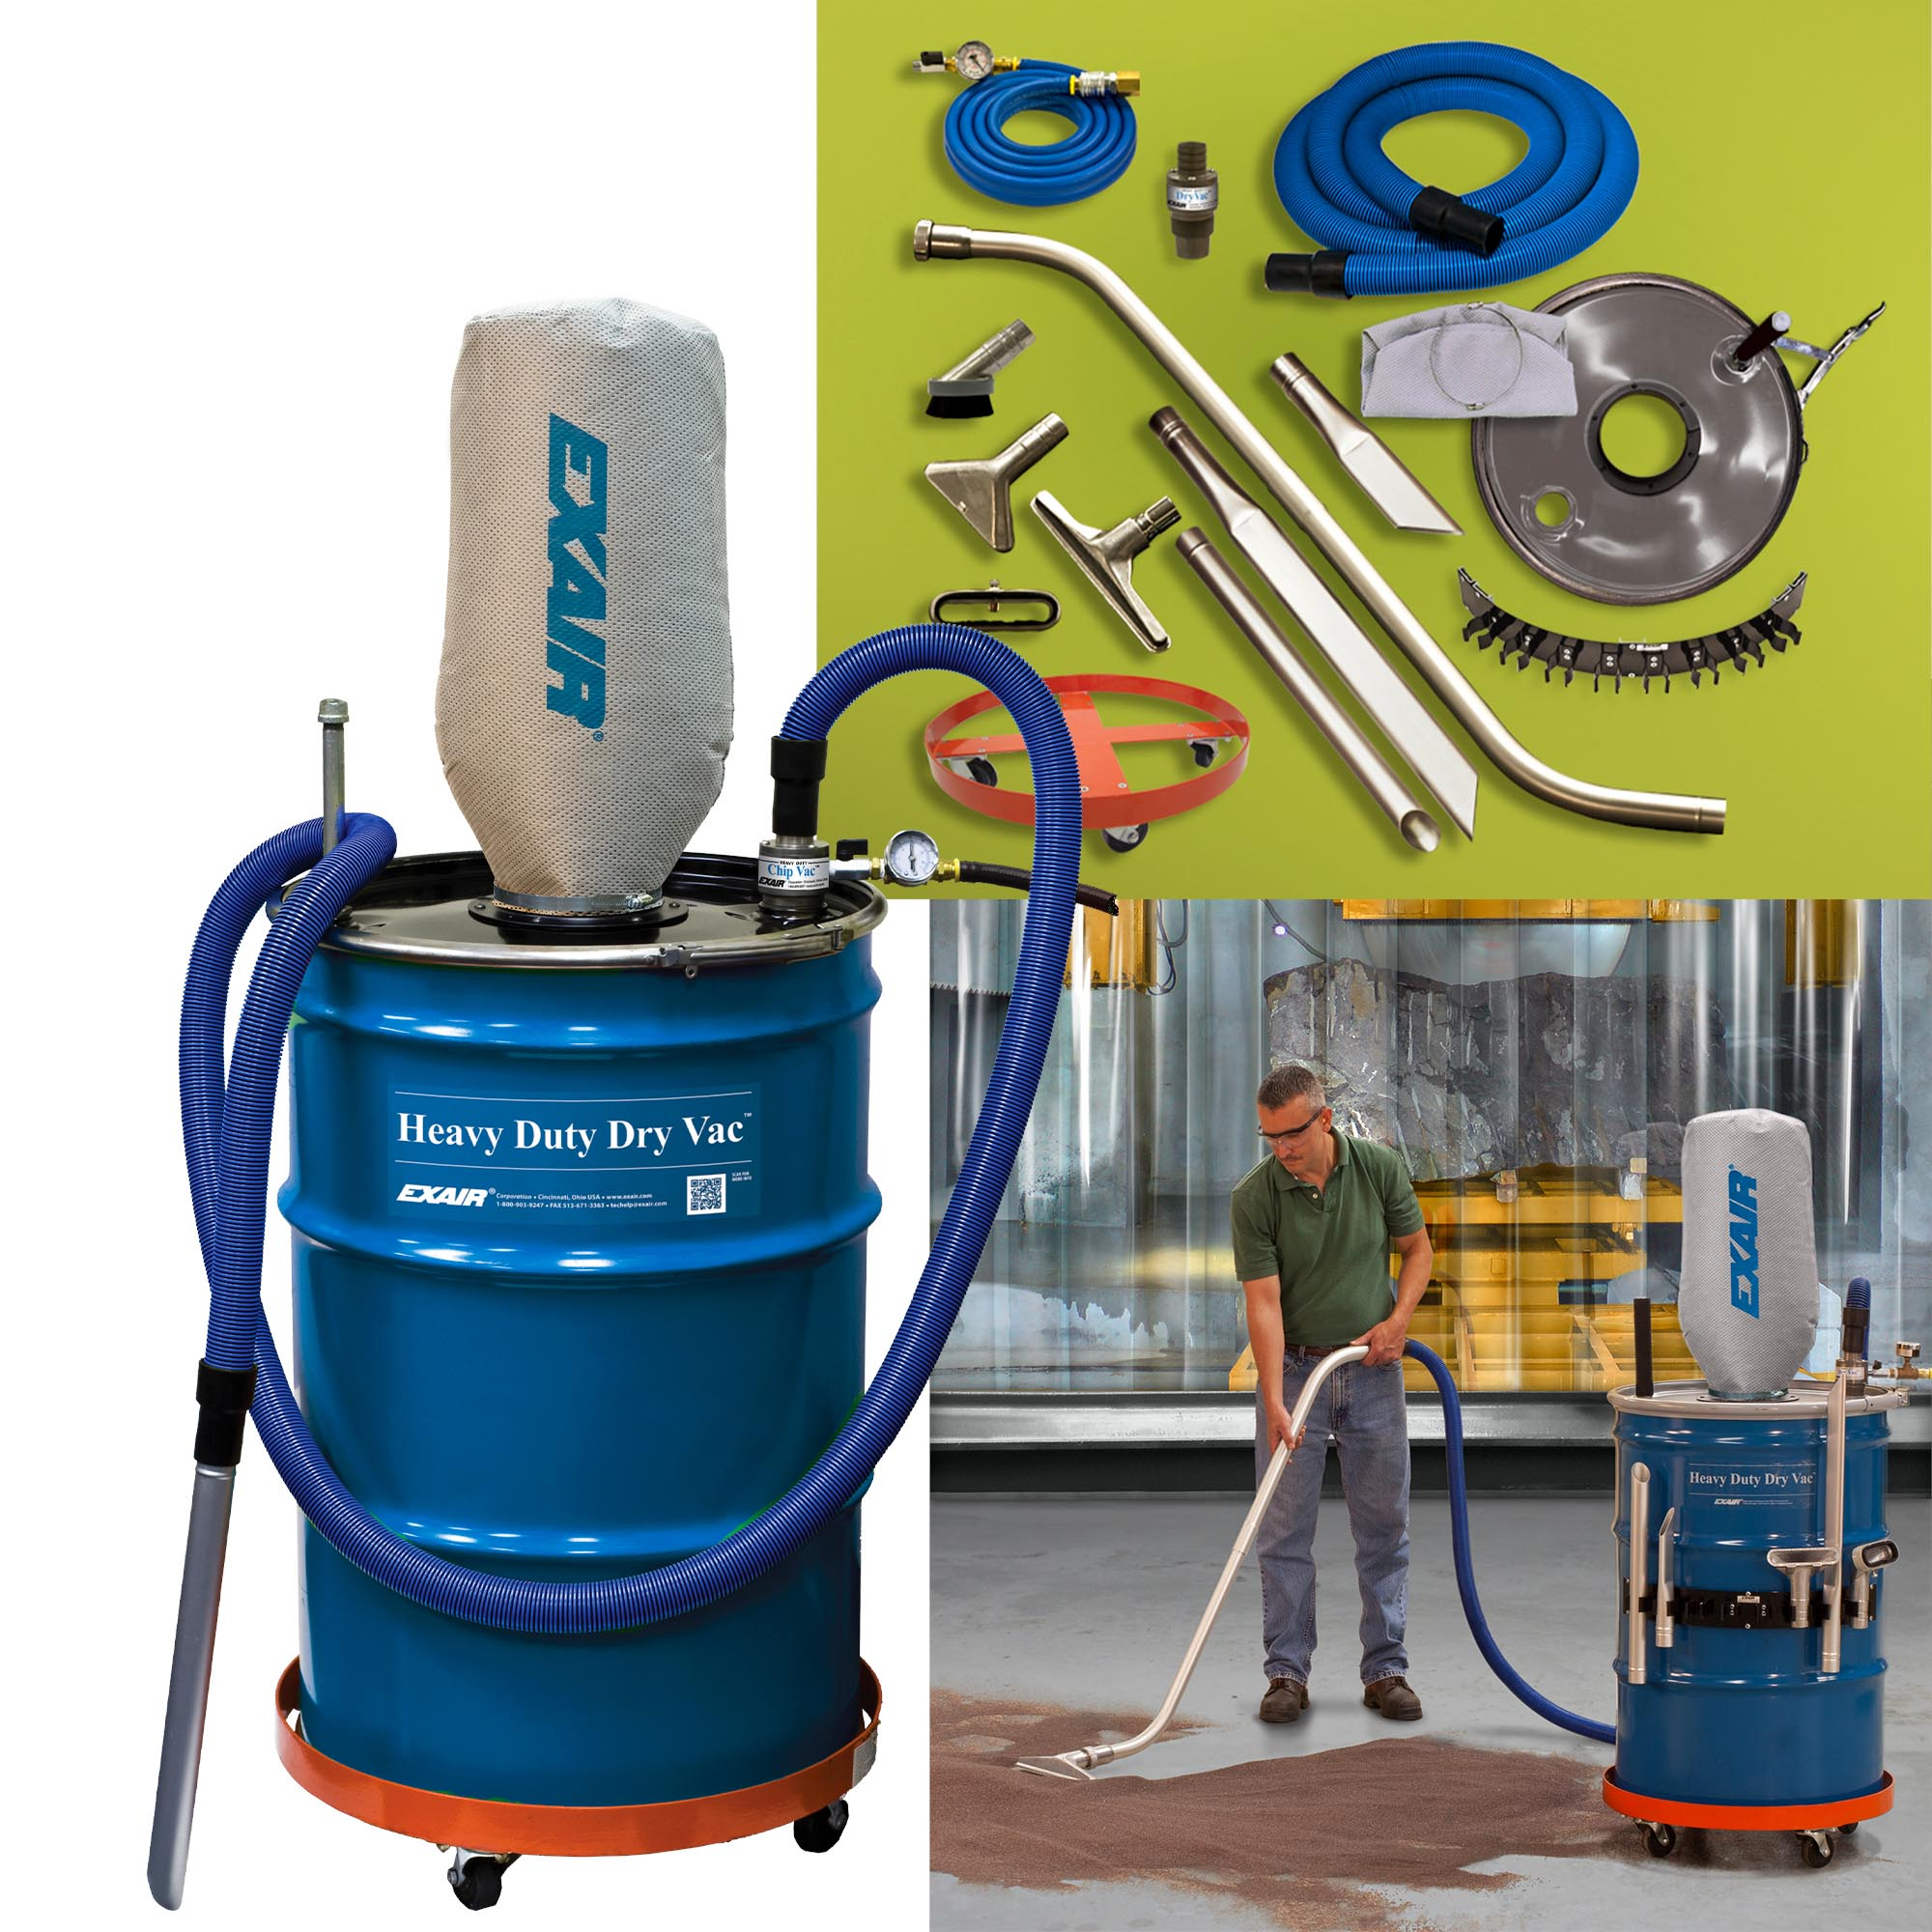 The Model 6197 Heavy Duty Dry Vac System includes 10' (3m) static resistant hose, 20' (6.1m) compressed air hose, filter bag, aluminum chip wand, shutoff valve and gauge. Deluxe and Premium systems also available.